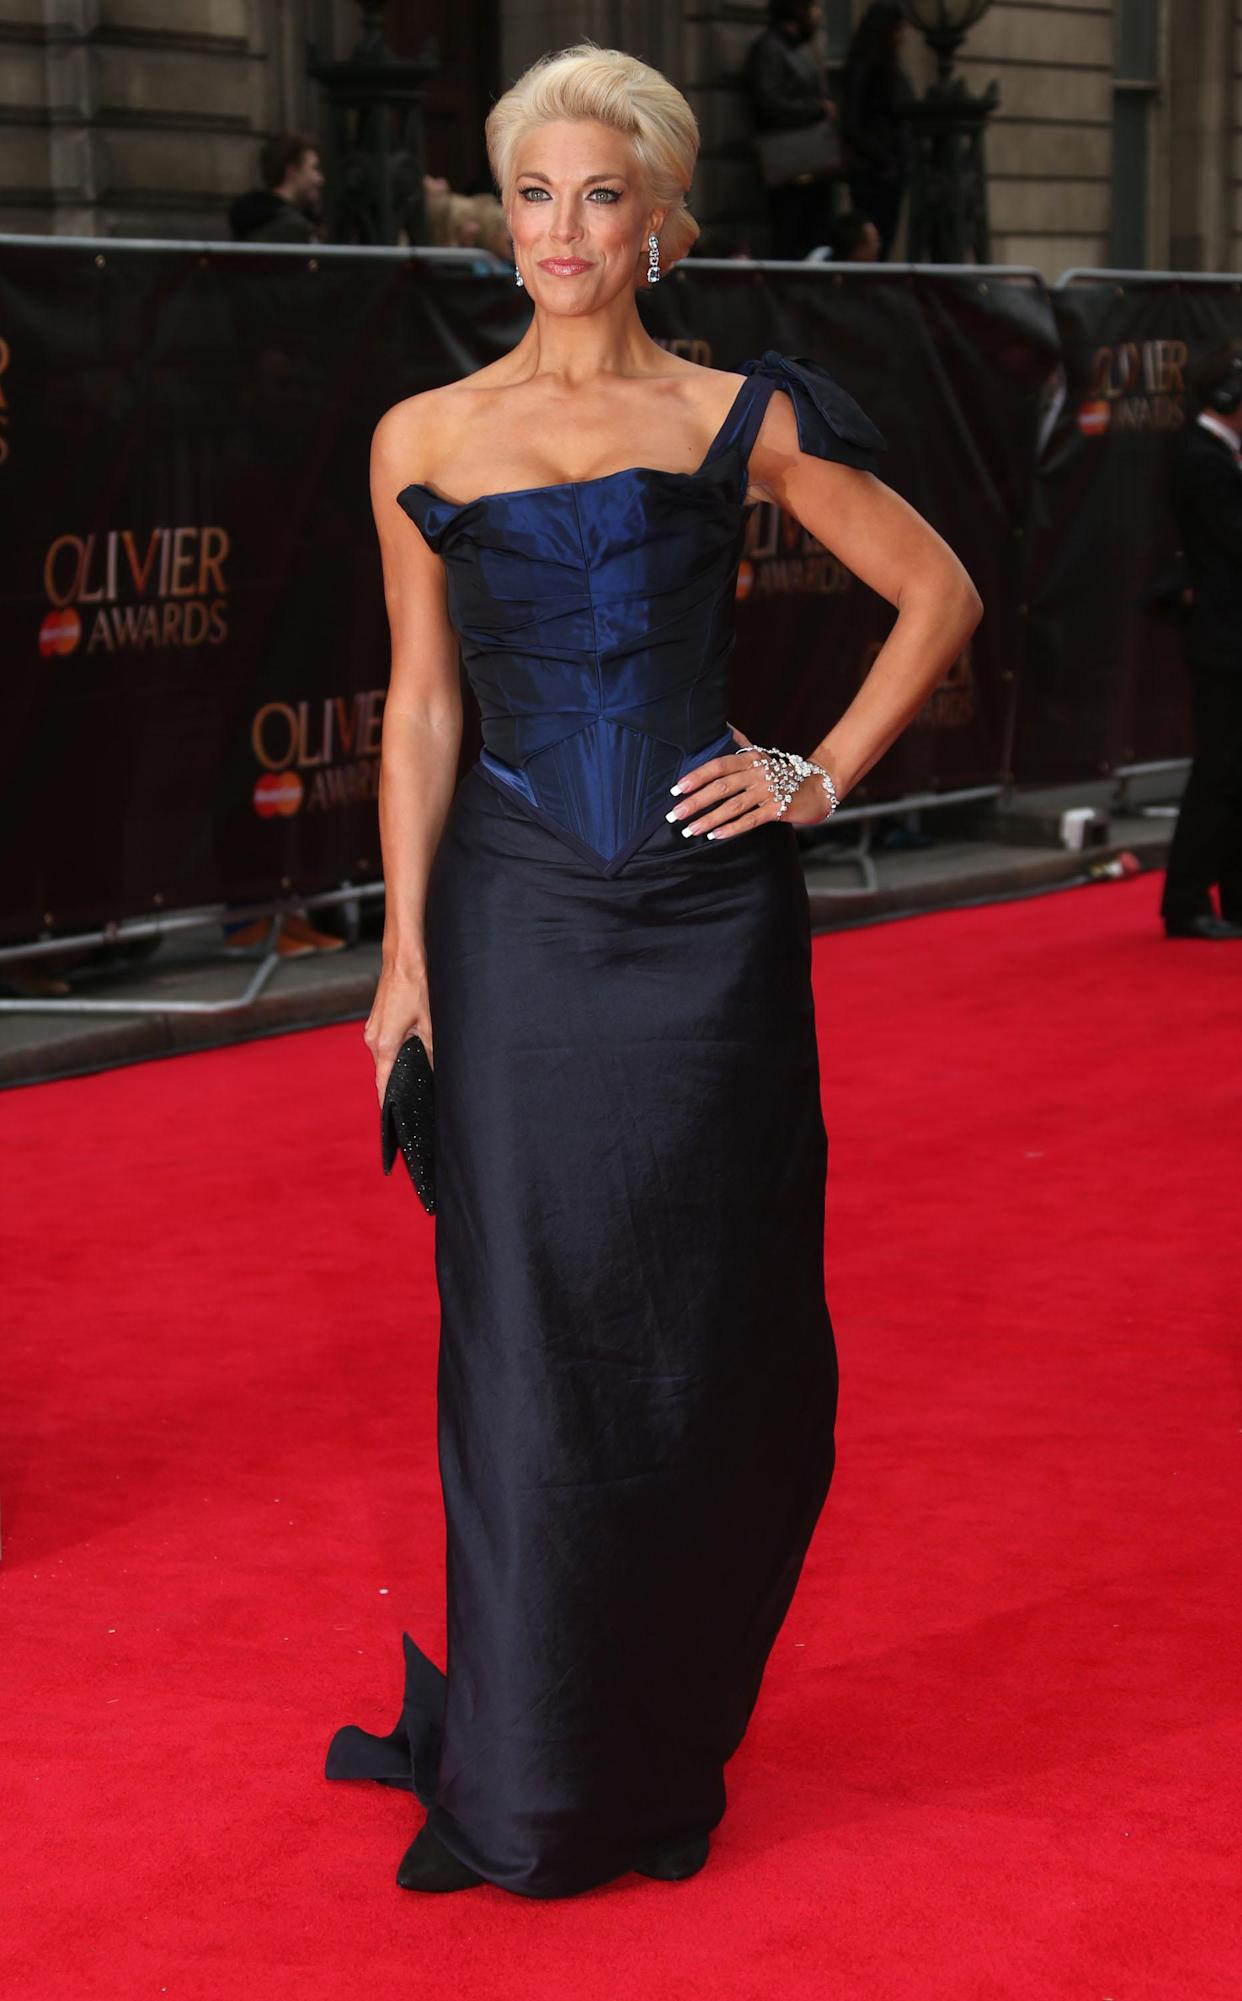 Hannah Waddingham  seen at the Olivier Awards 2013 at the Royal opera House in London on Sunday, April 28th, 2013. Photo by Joel Ryan/Invision/AP